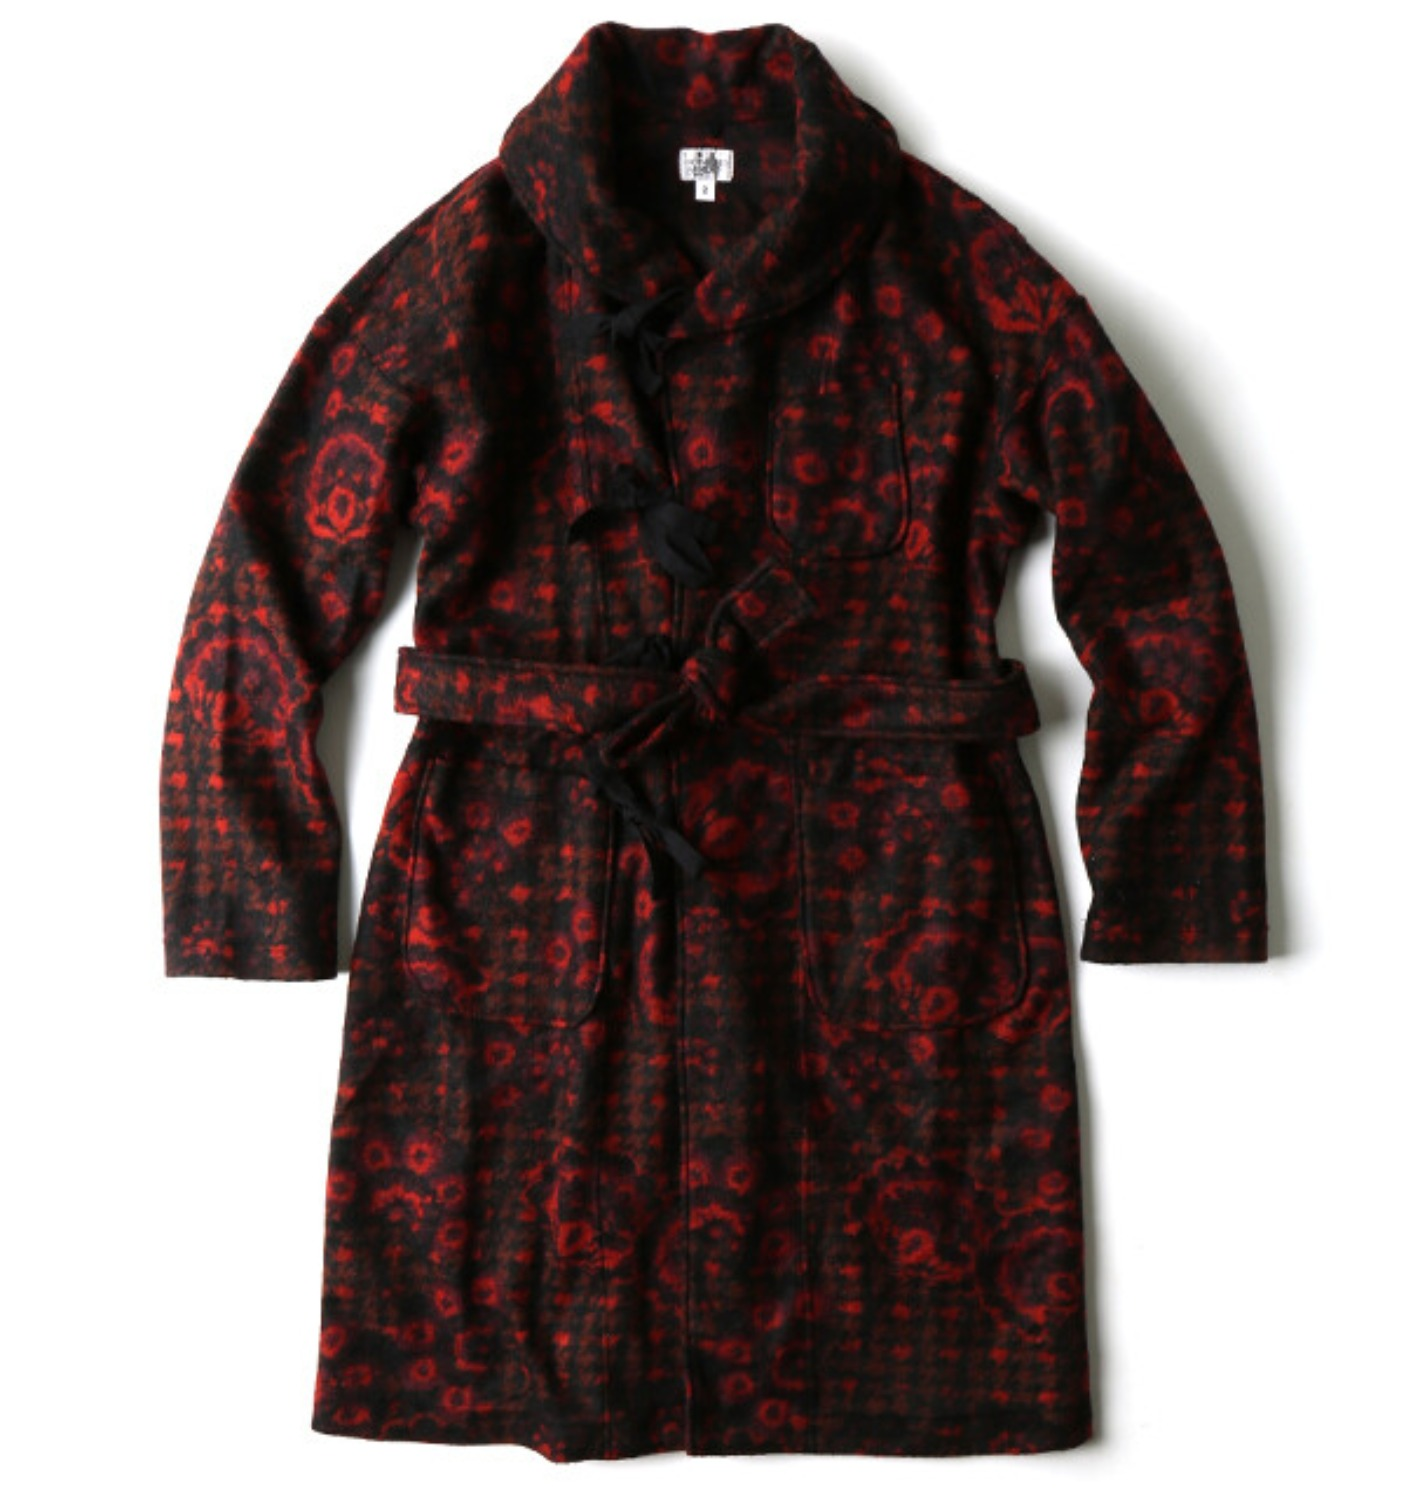 SHAWL COLLAR KNIT JACKET RED/BLACK FLORAL KNIT